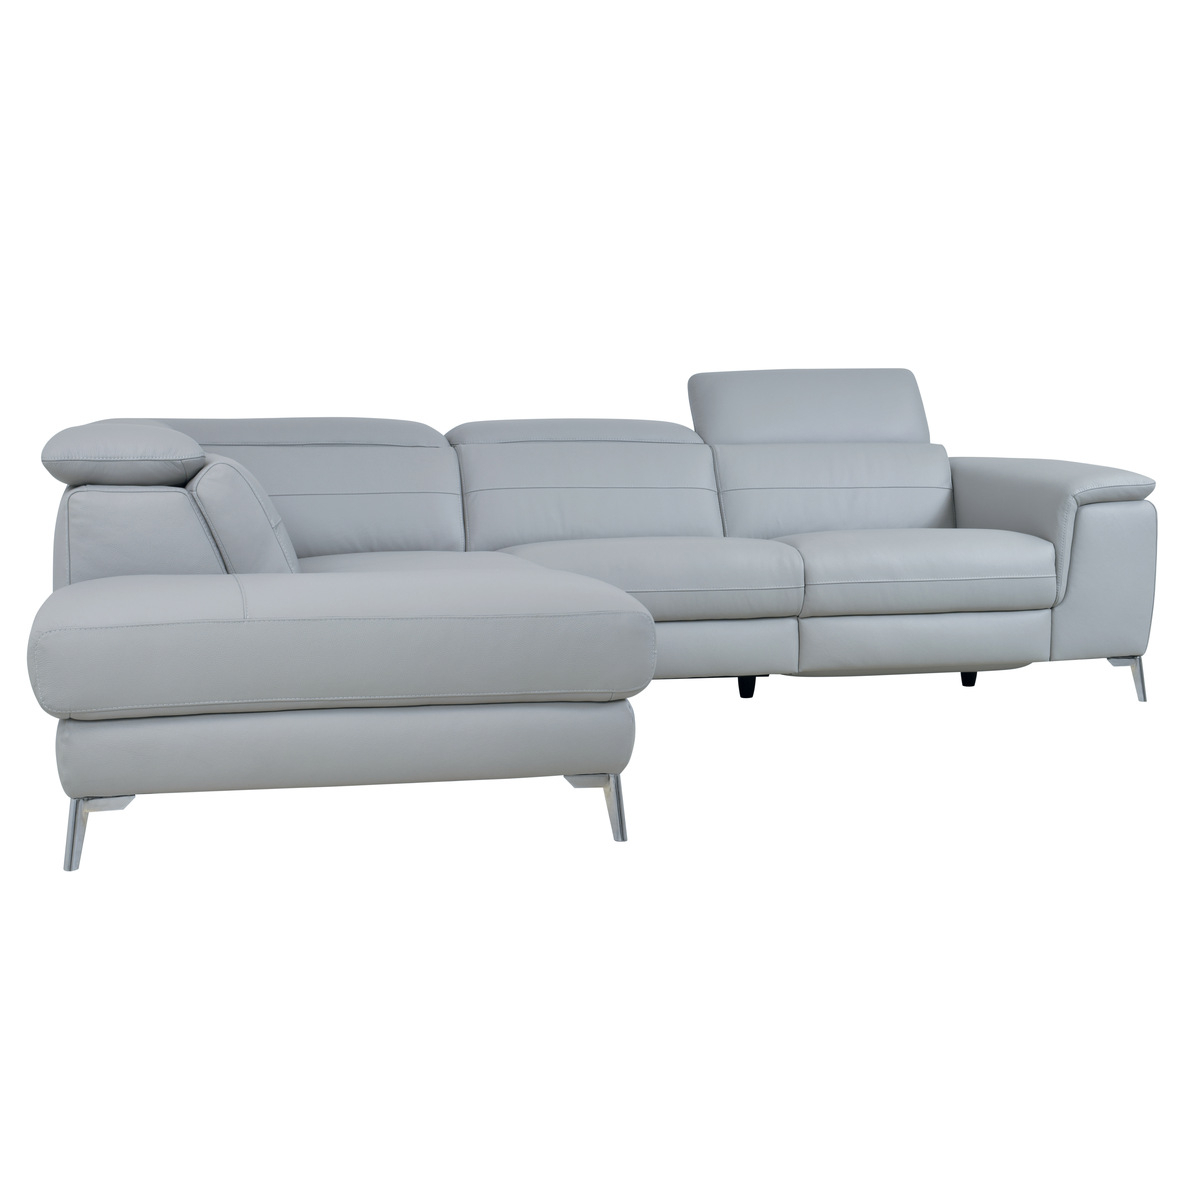 8256Gylss 2 Piece Sectional With Left Chaise, Light Grey For 2Pc Crowningshield Contemporary Chaise Sofas Light Gray (View 10 of 15)